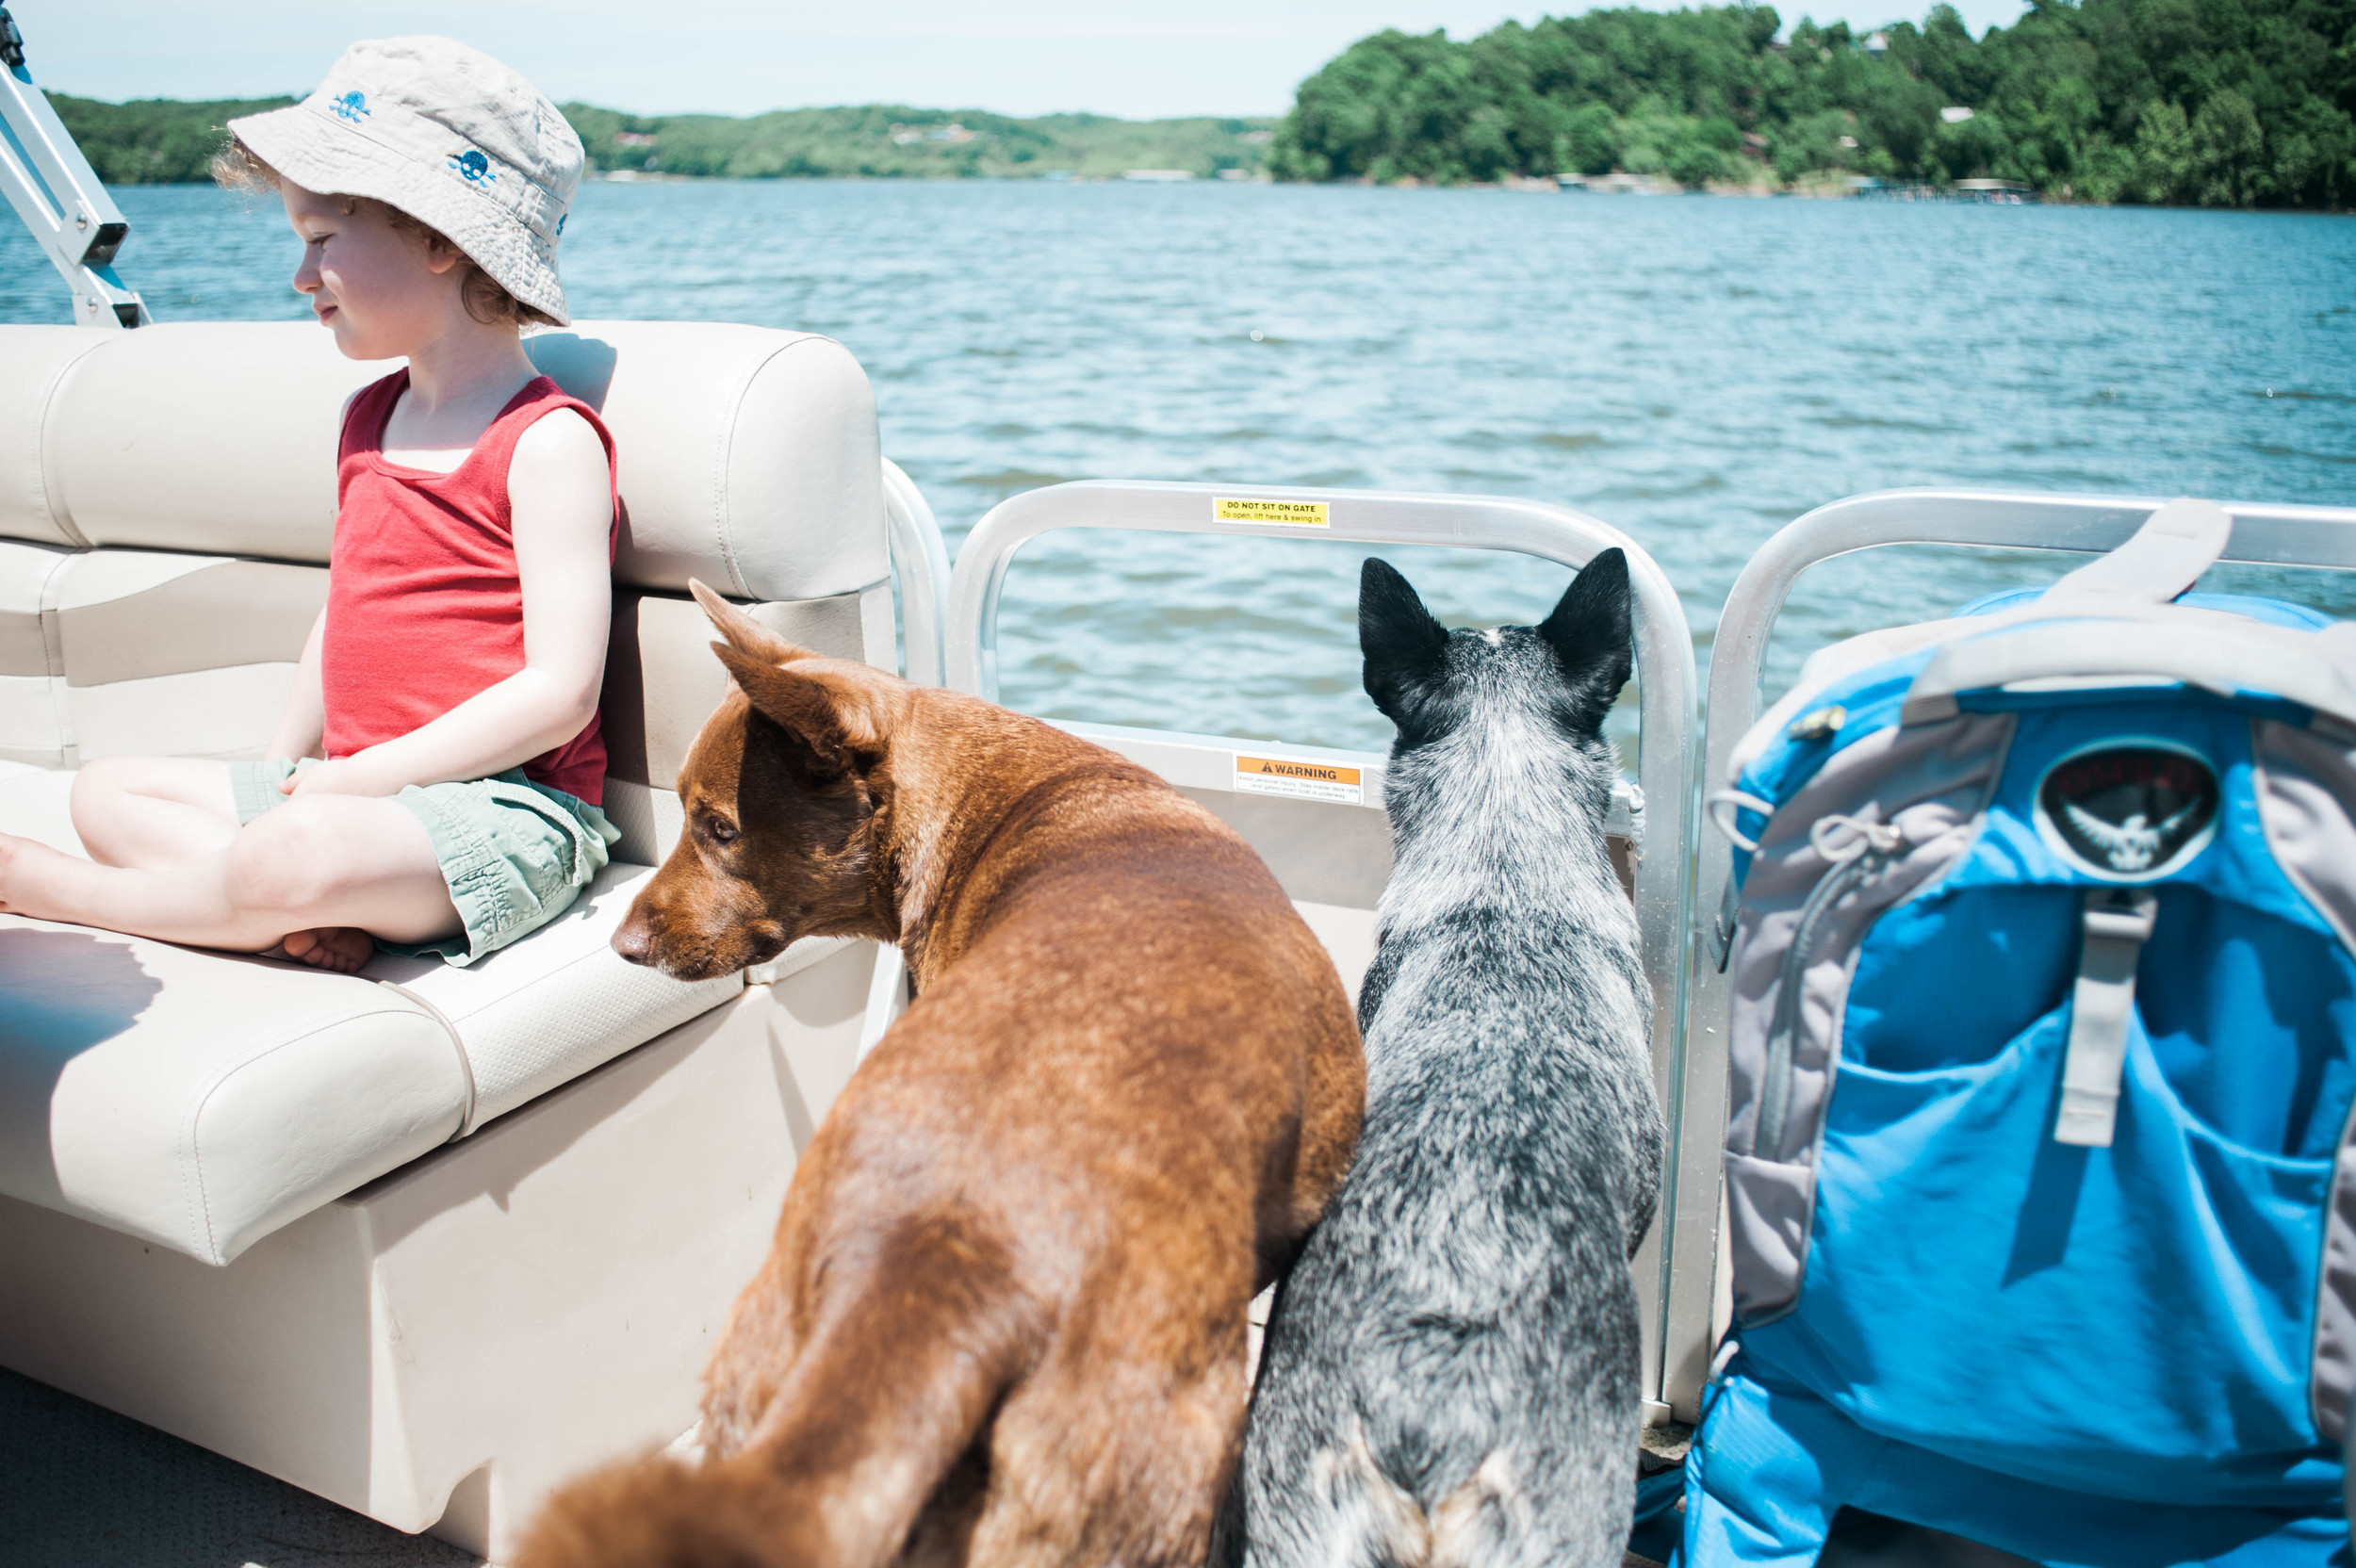 lake_house_vacation_in_waverly_tennessee_with_nephews_by_mnewsom_photography_summer_photos